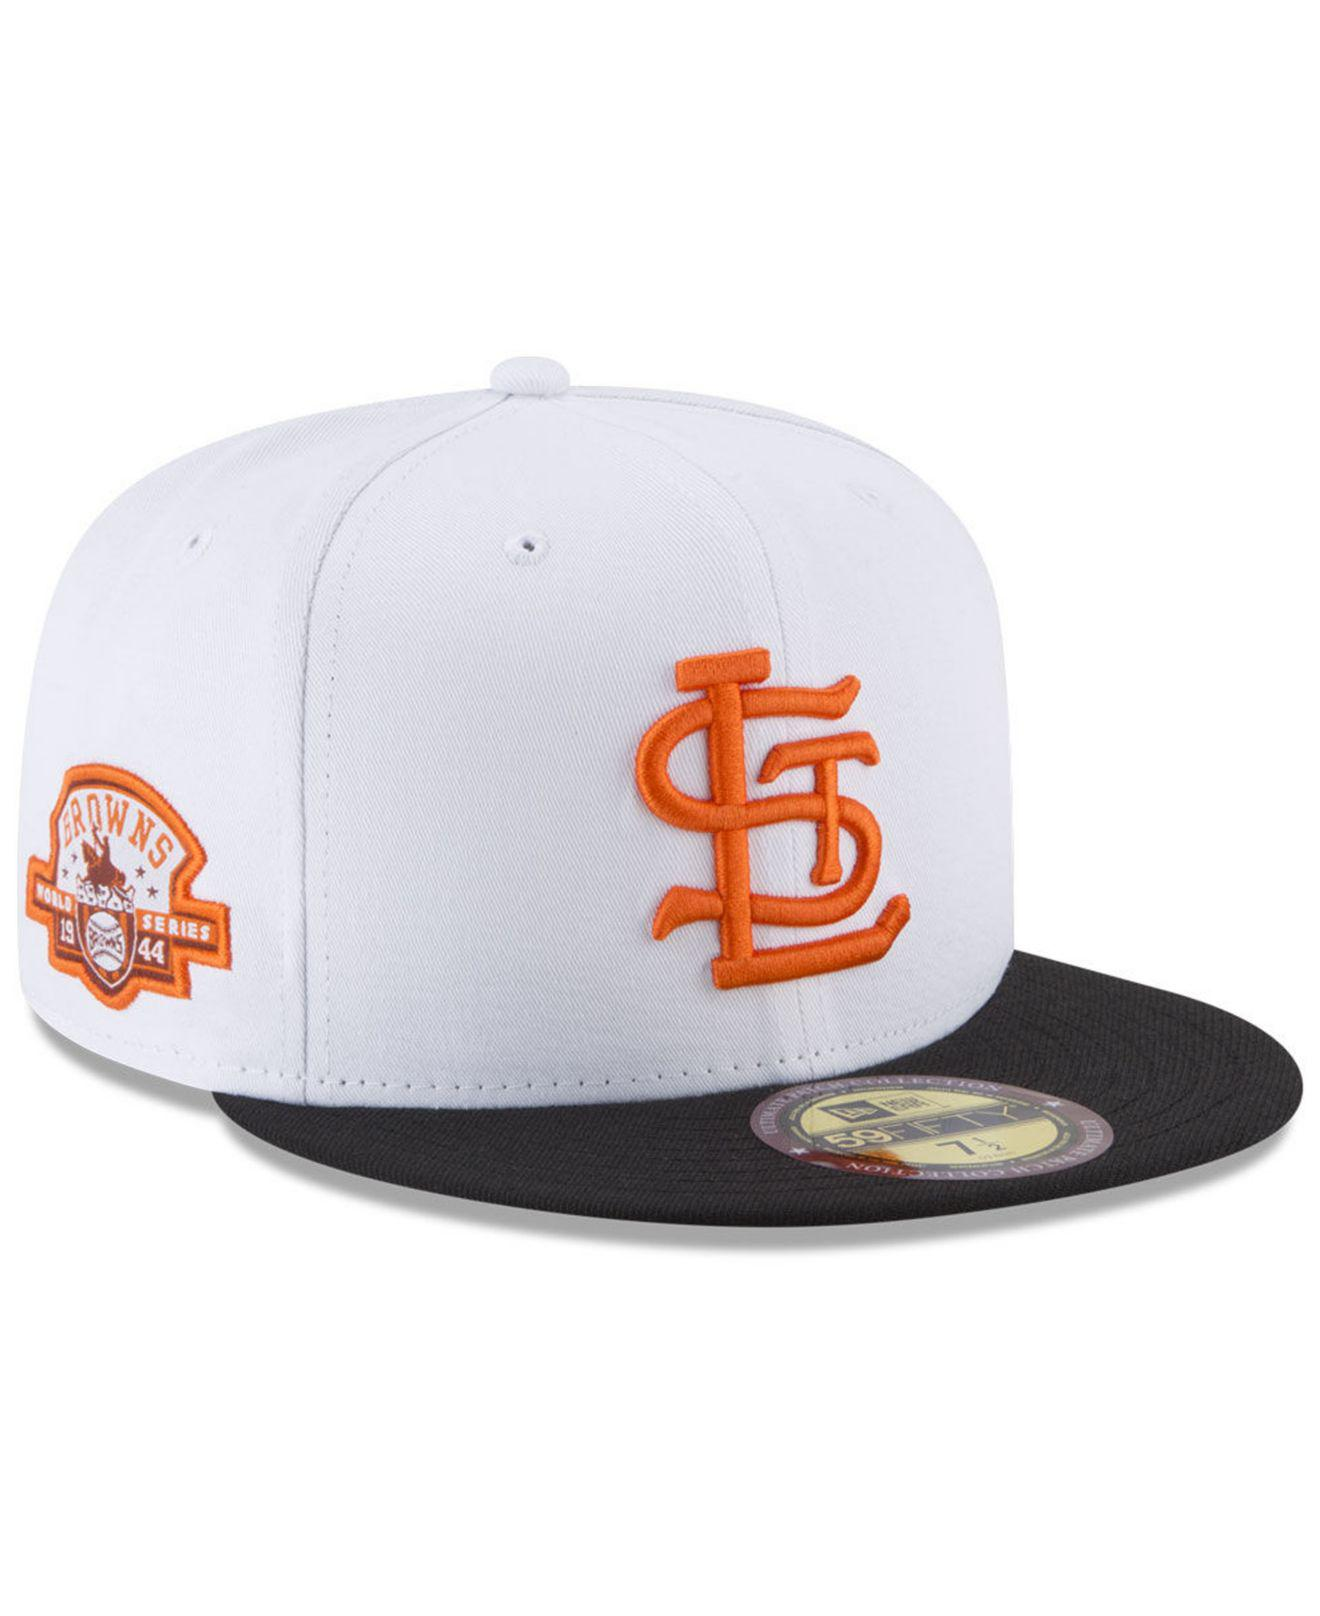 best loved 513d2 01b9a Lyst - KTZ Ultimate Patch Collection World Series 59fifty Fitted Cap ...